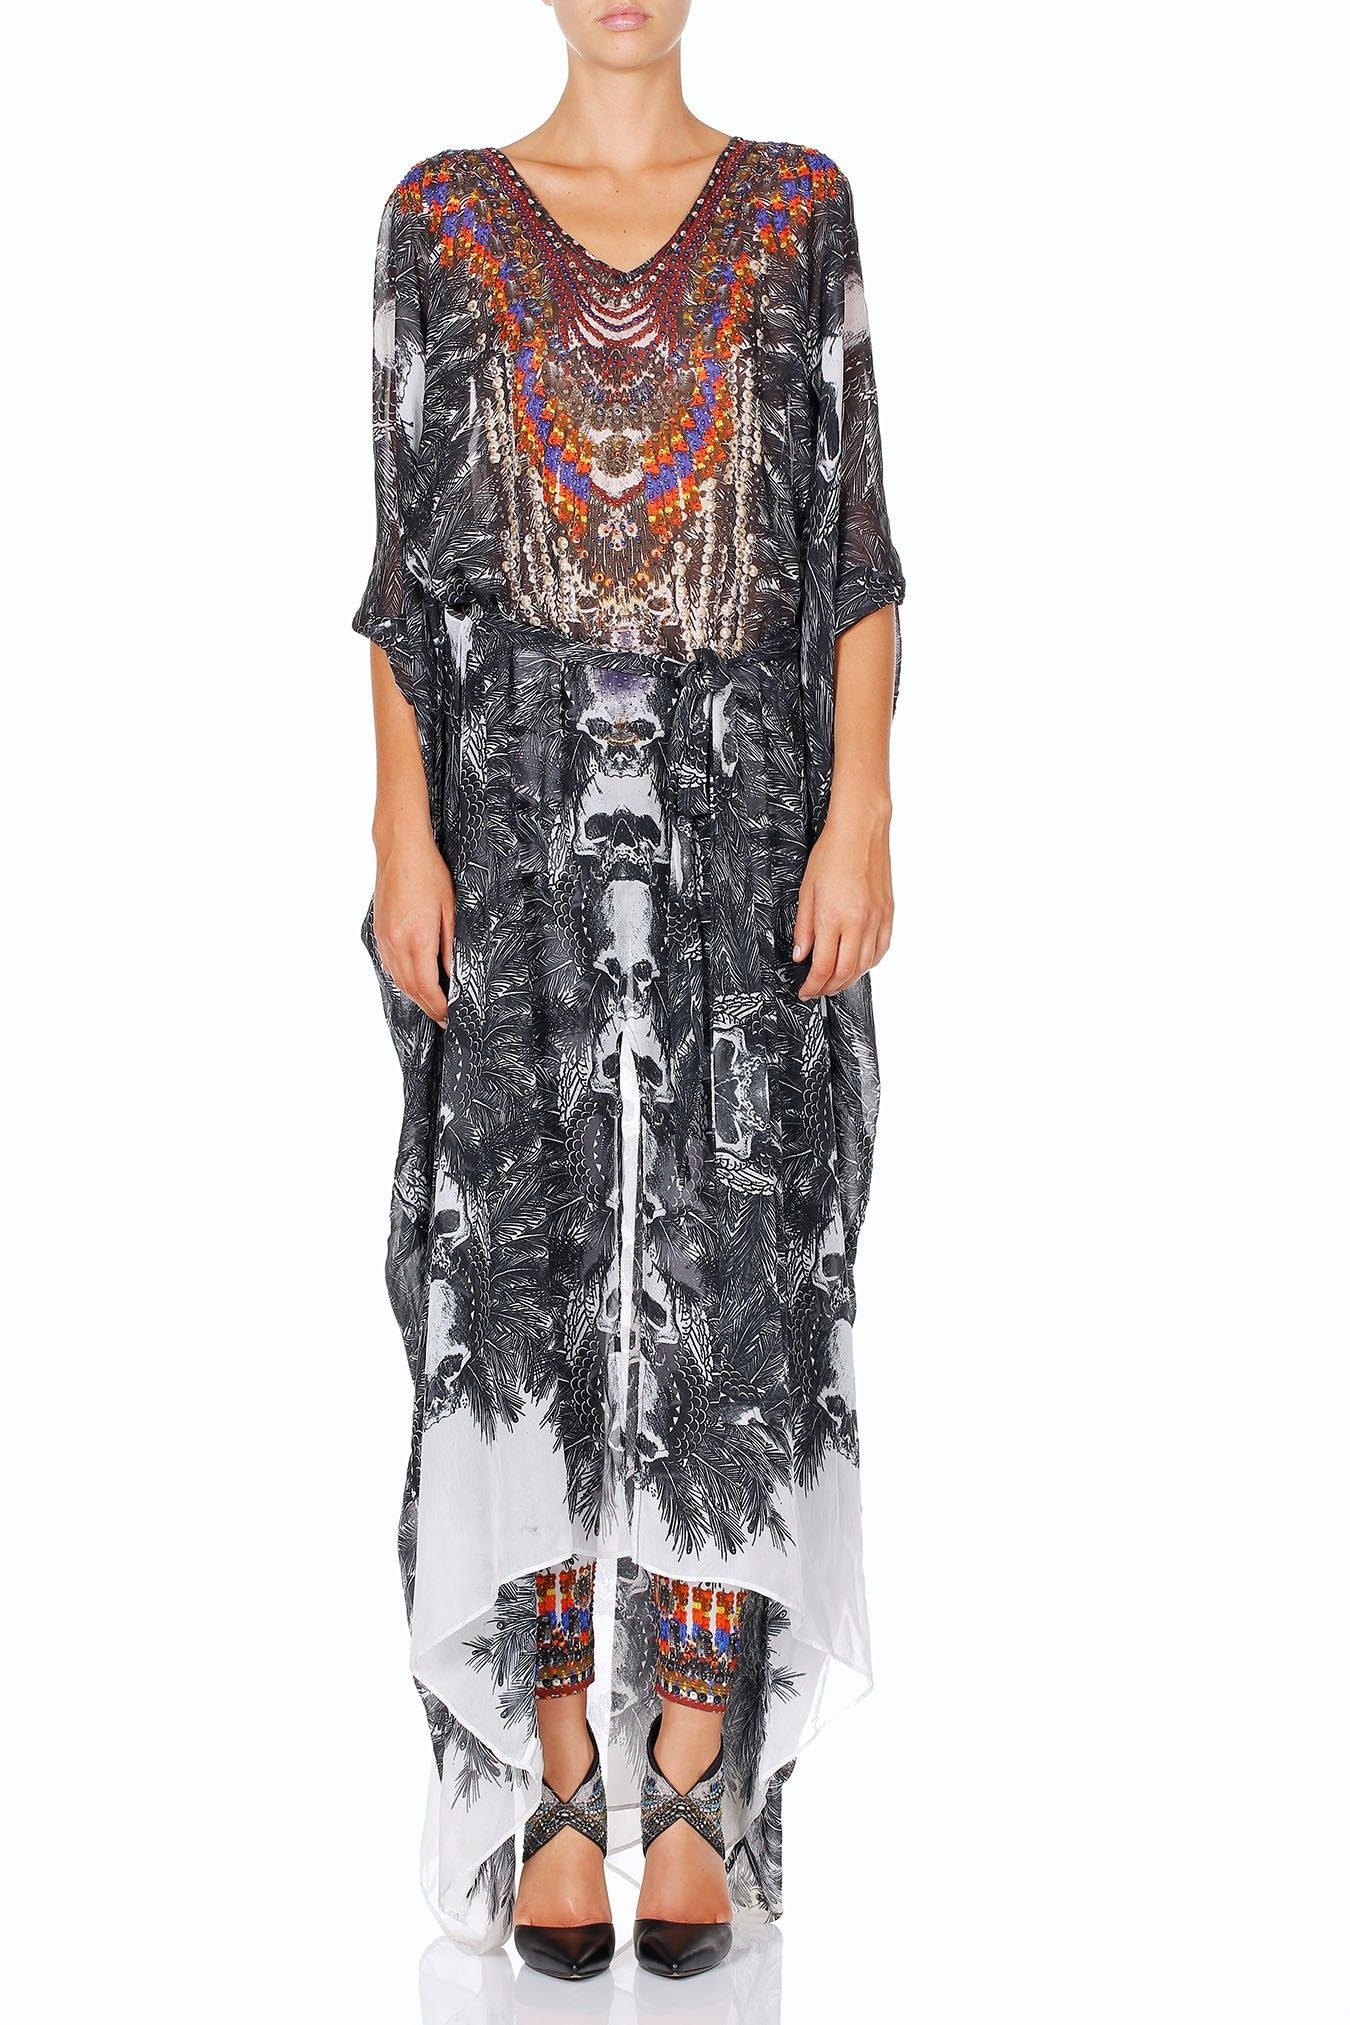 677fda1134027 INNER ANARCHIST BELTED KAFTAN WITH ARM DETAIL | My Camilla Kaftans ...